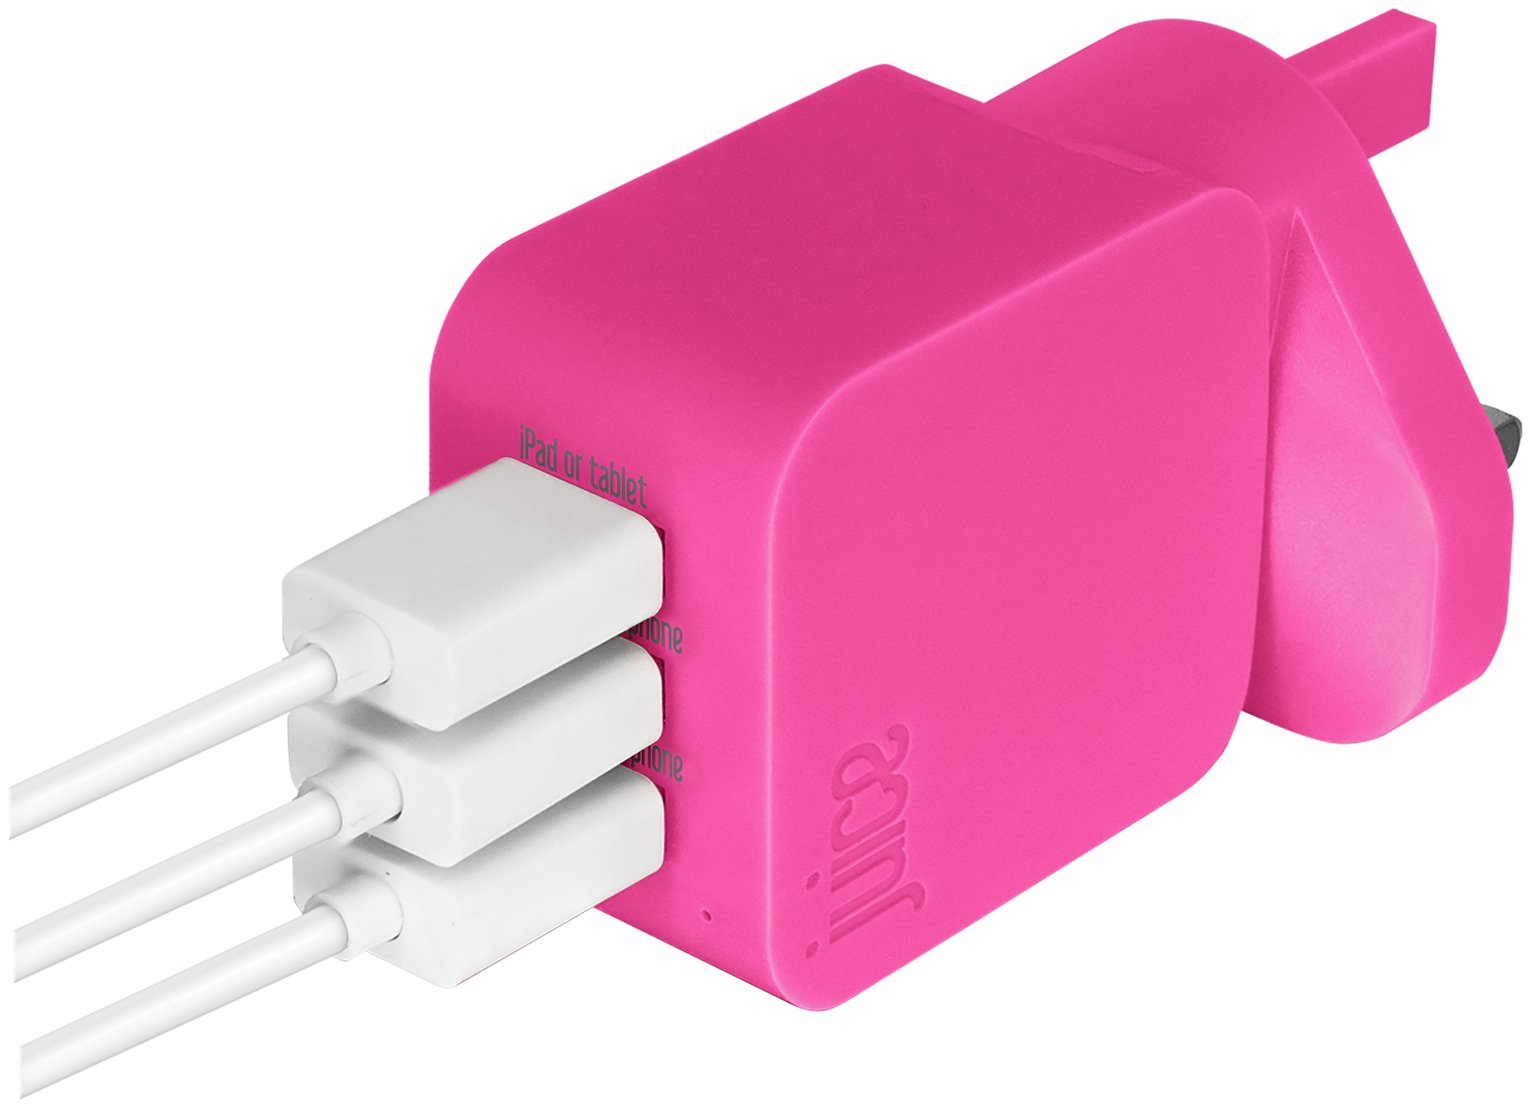 Juice USB 2.0/3.0 Triple Wall Charger review